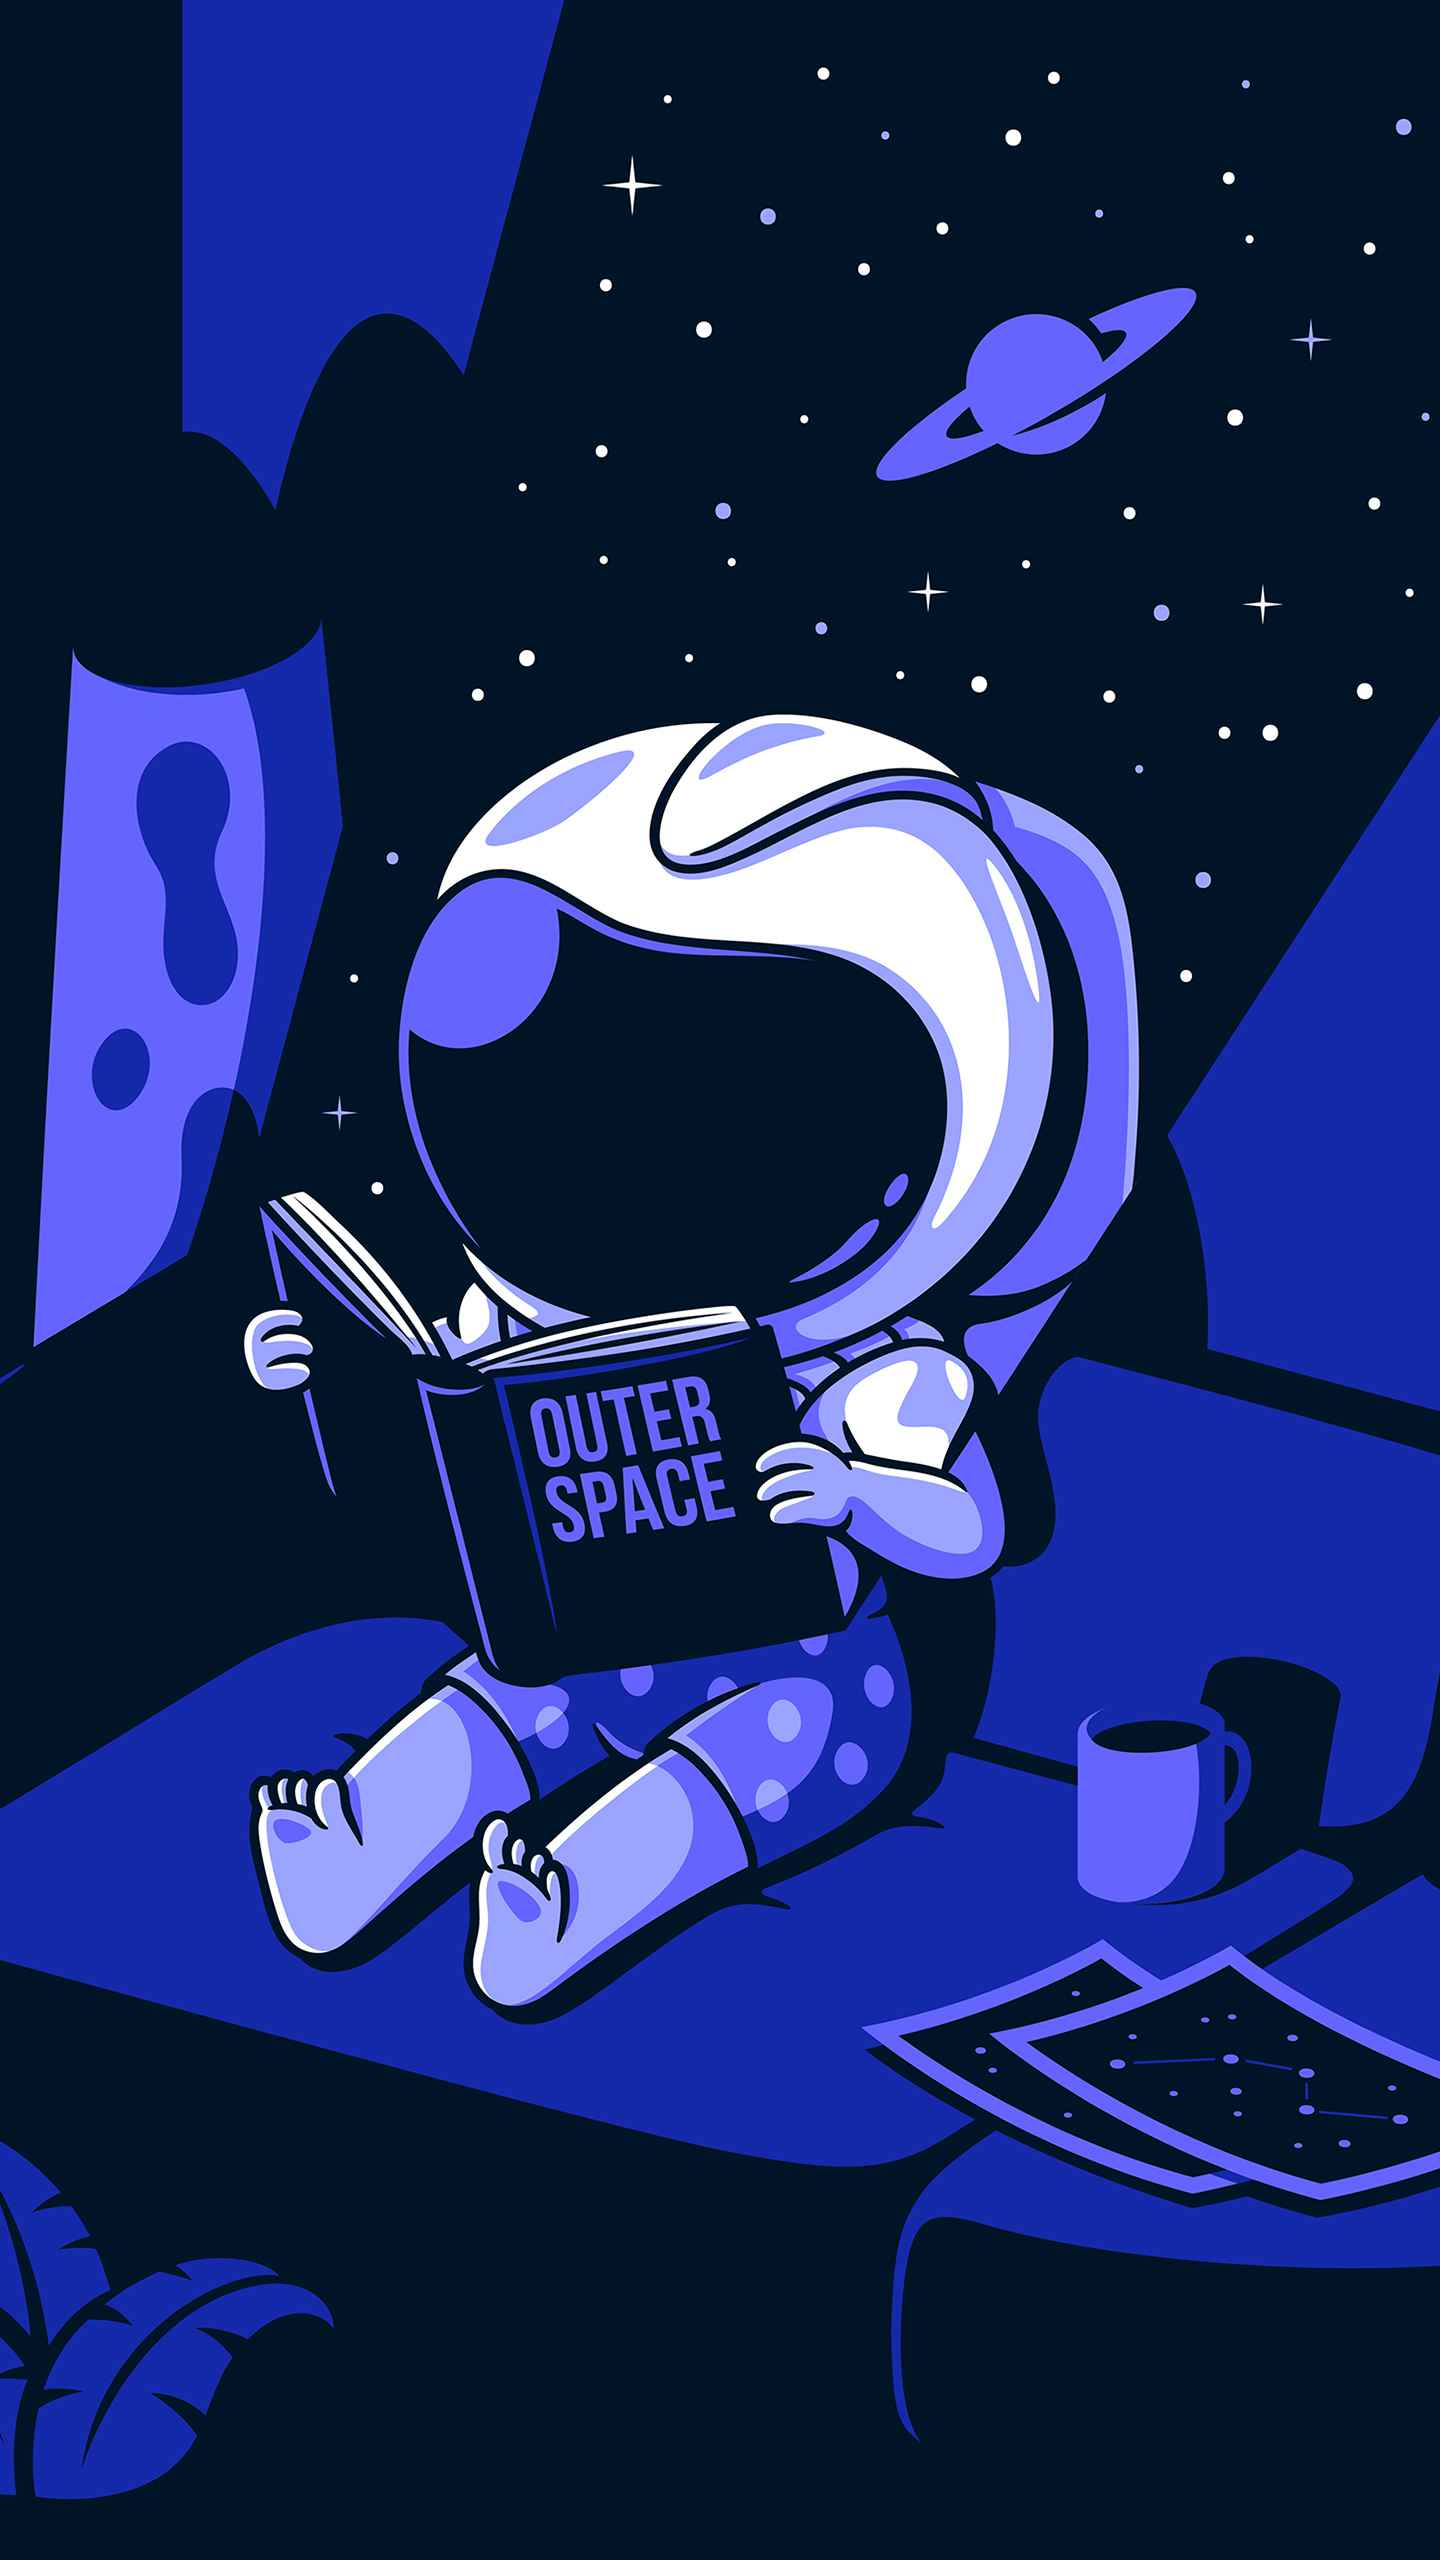 Cute Anime Iphone Wallpaper Outer Space Astronaut Iphone Wallpaper Iphone Wallpapers